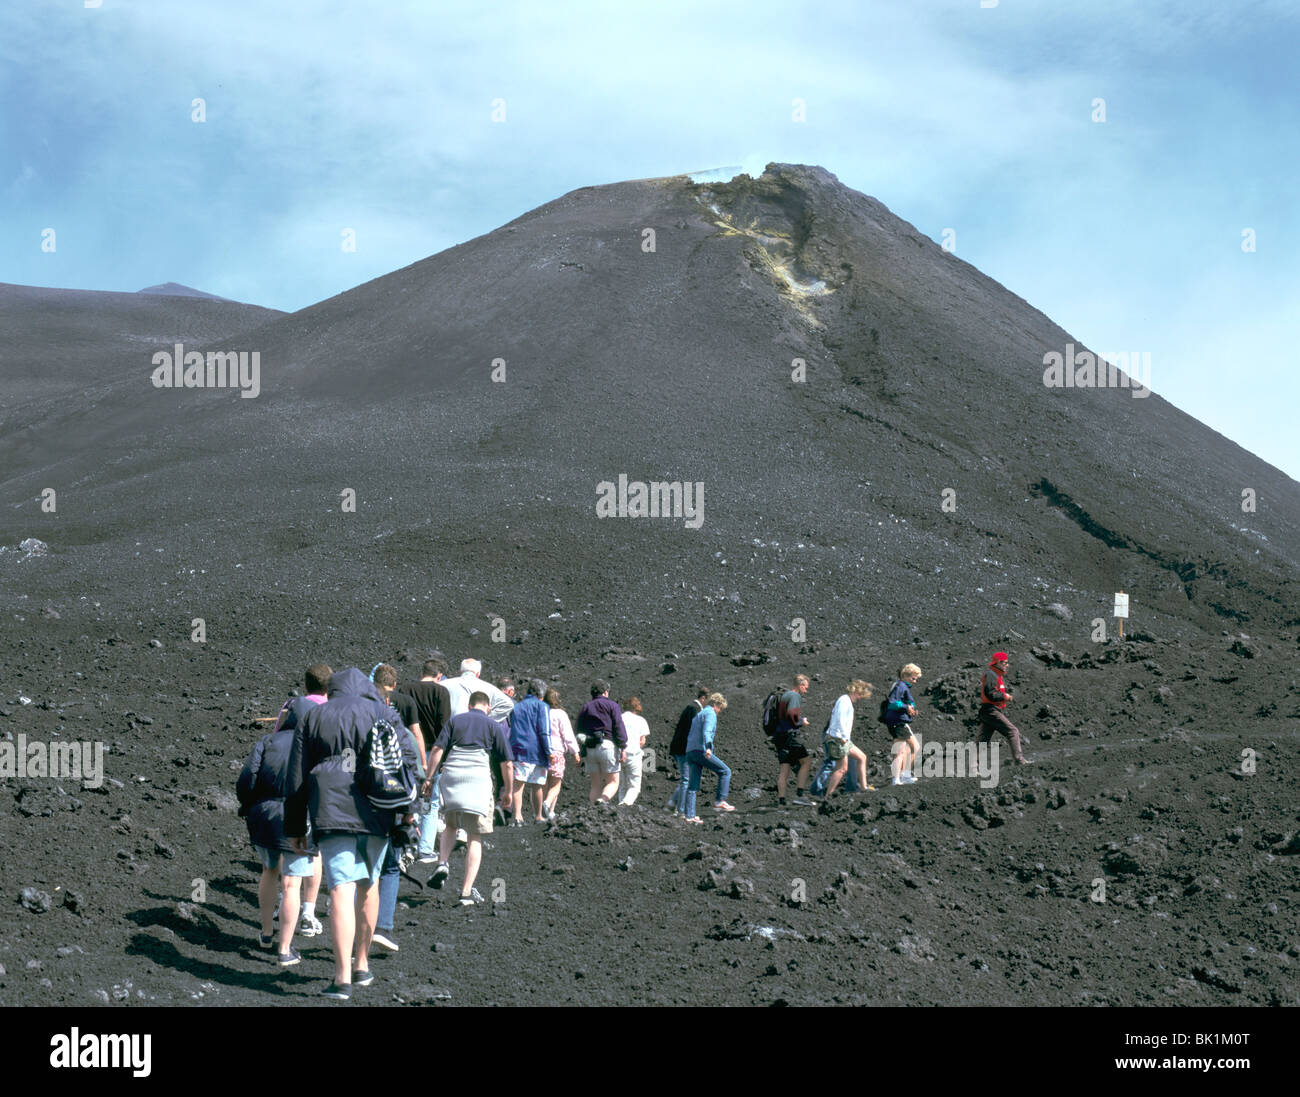 Guided tour to lava fields, Mount Etna, Sicily, Italy. - Stock Image